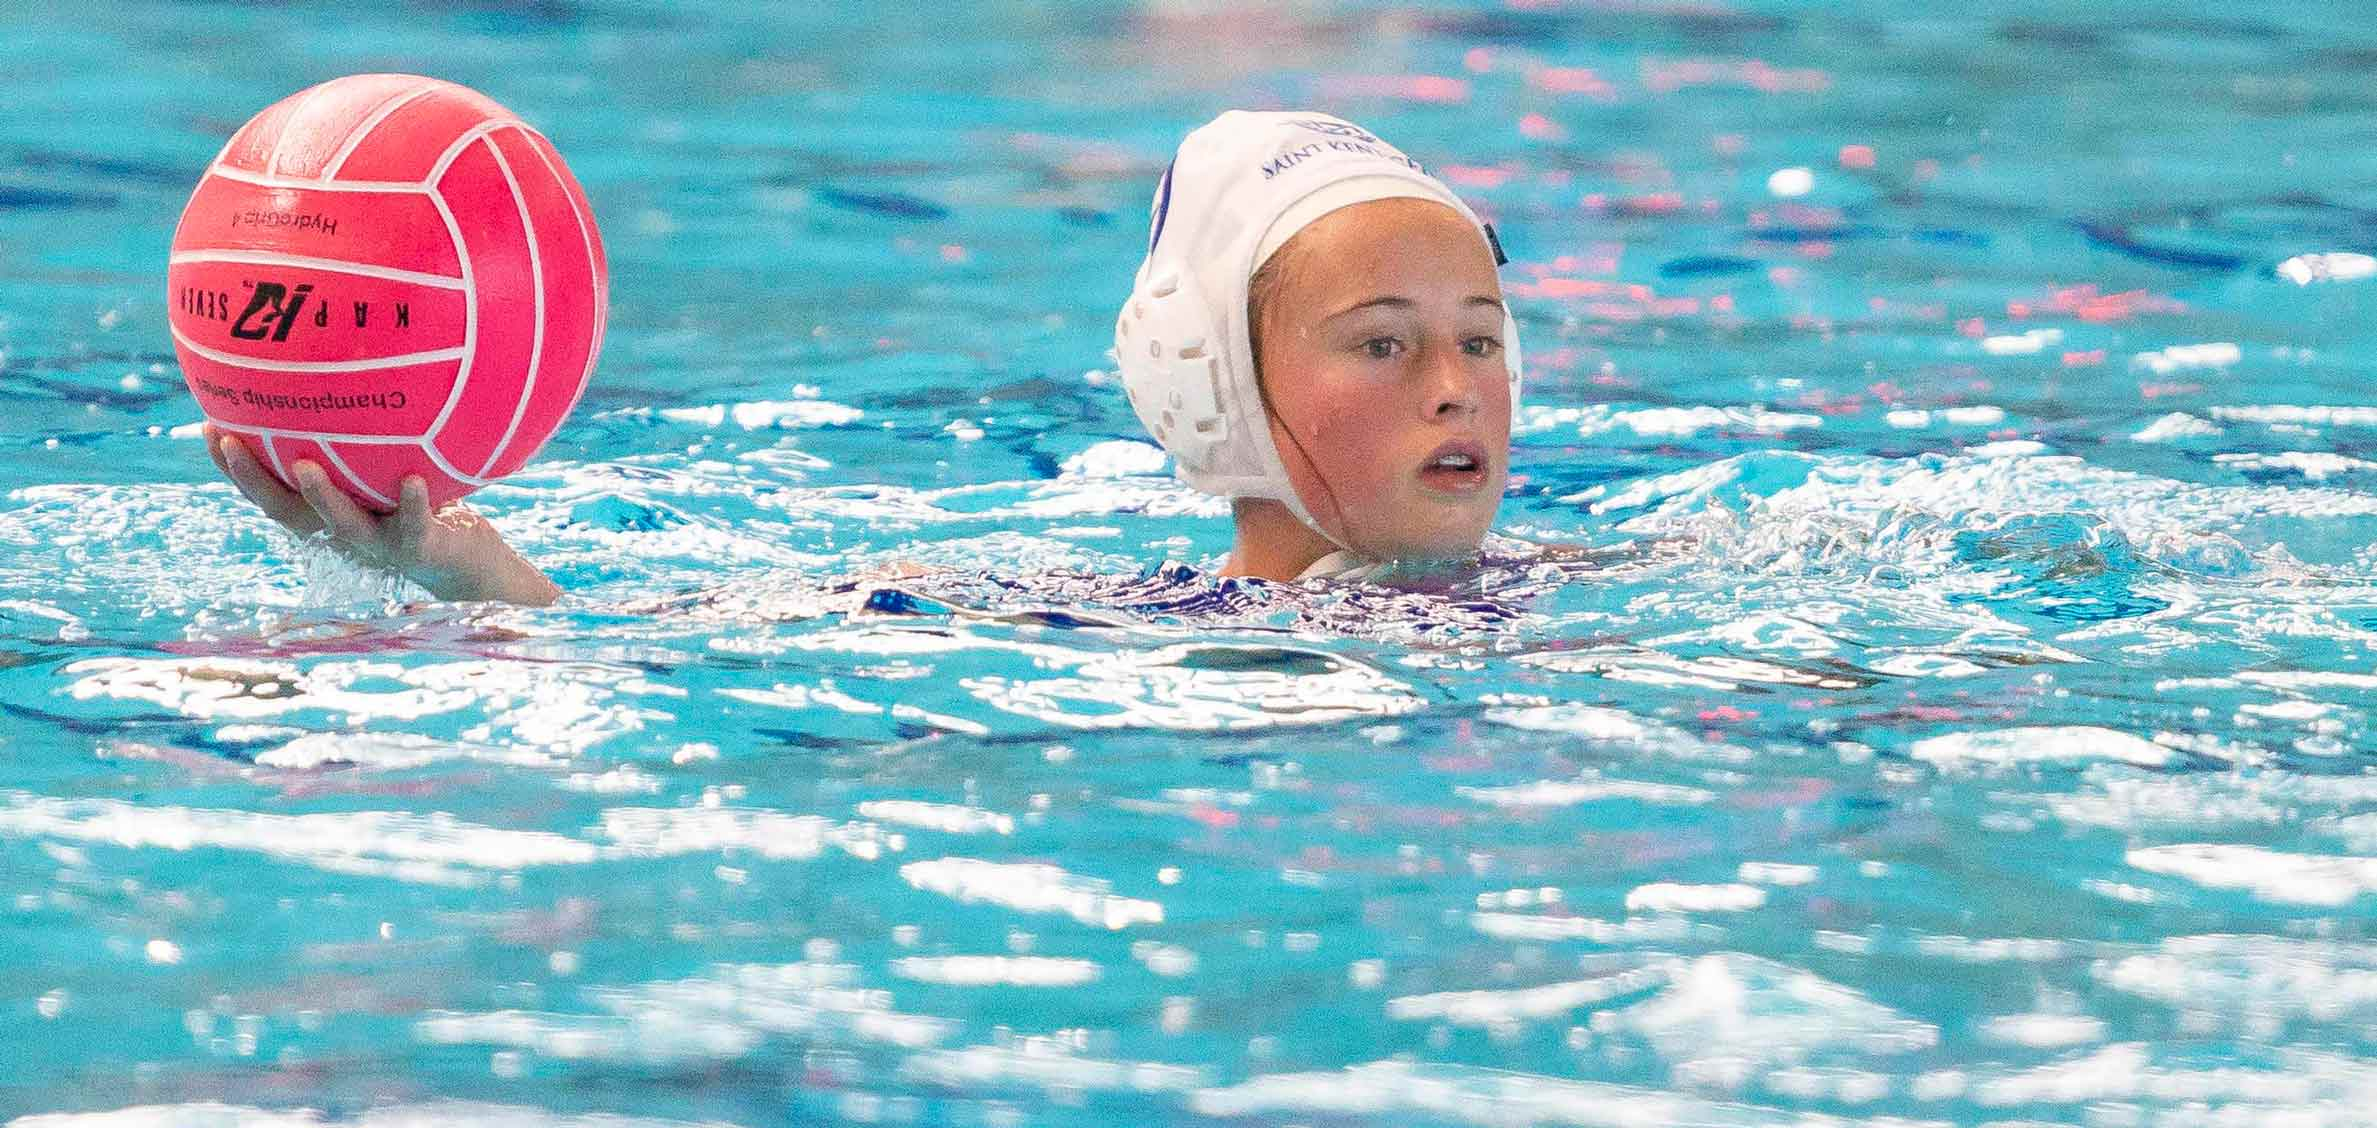 Saint-Kentigern-Girls-School-Sports-Water-Polo.jpg